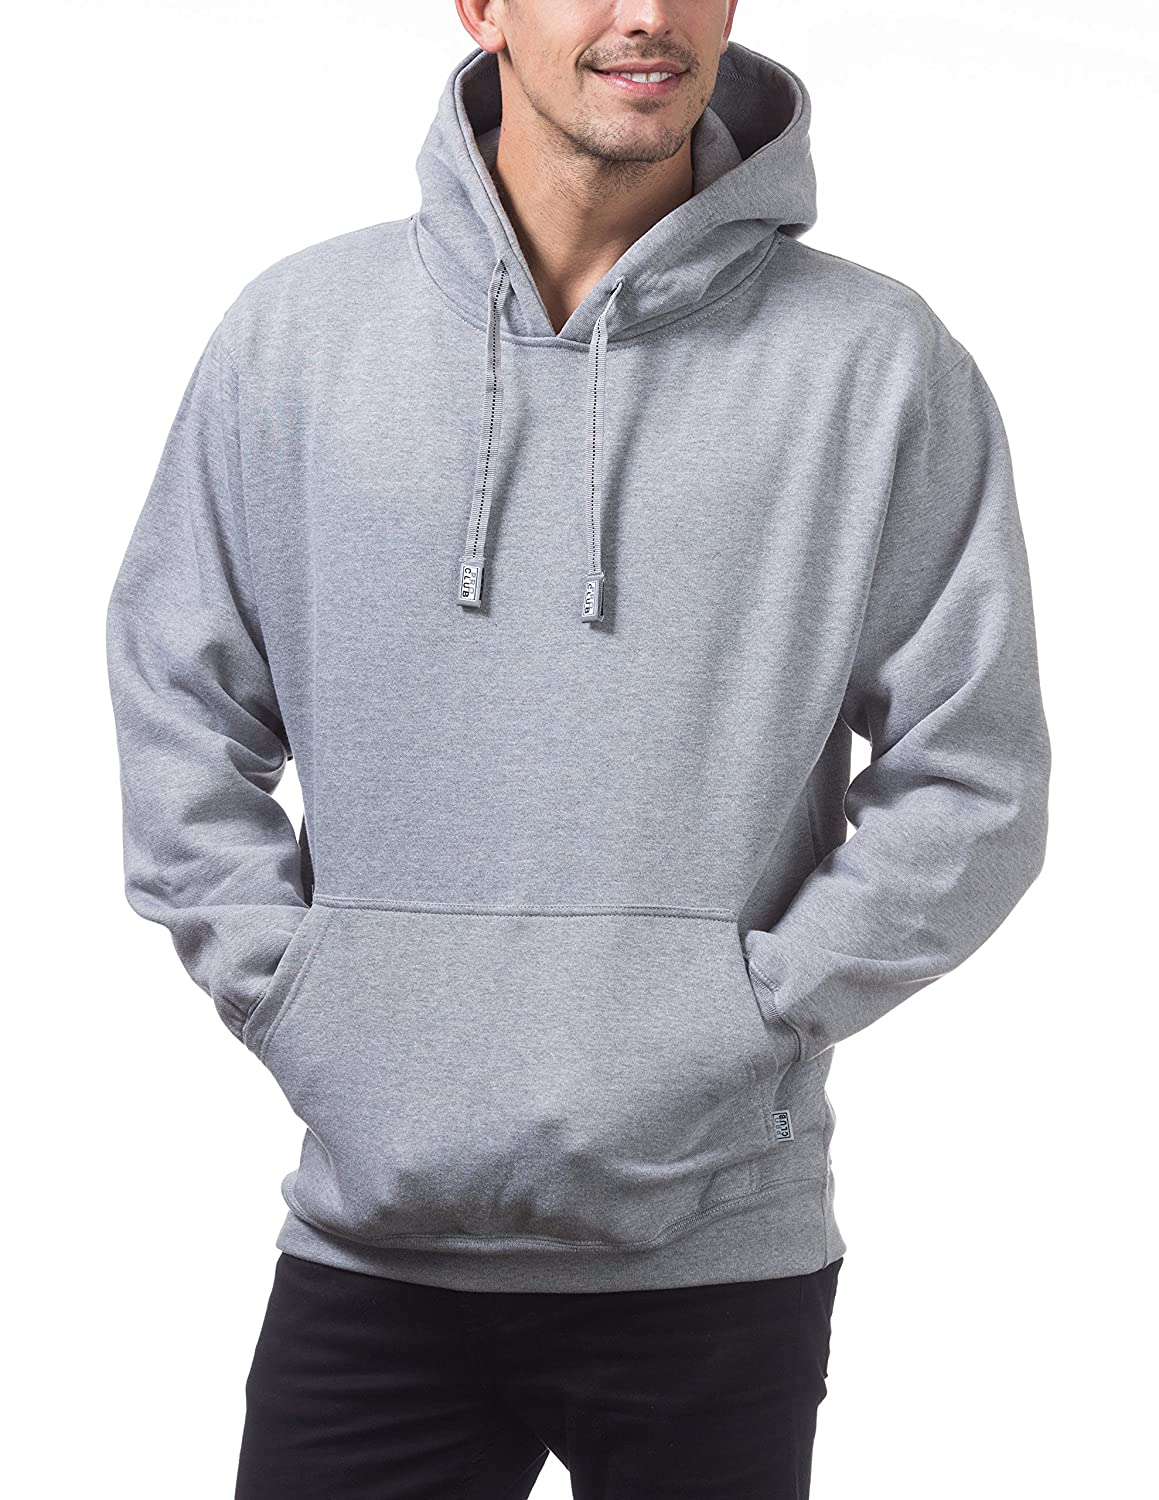 fdeb4235683 Pro Club Men's Heavyweight Pullover Hoodie (13oz) at Amazon Men's Clothing  store: